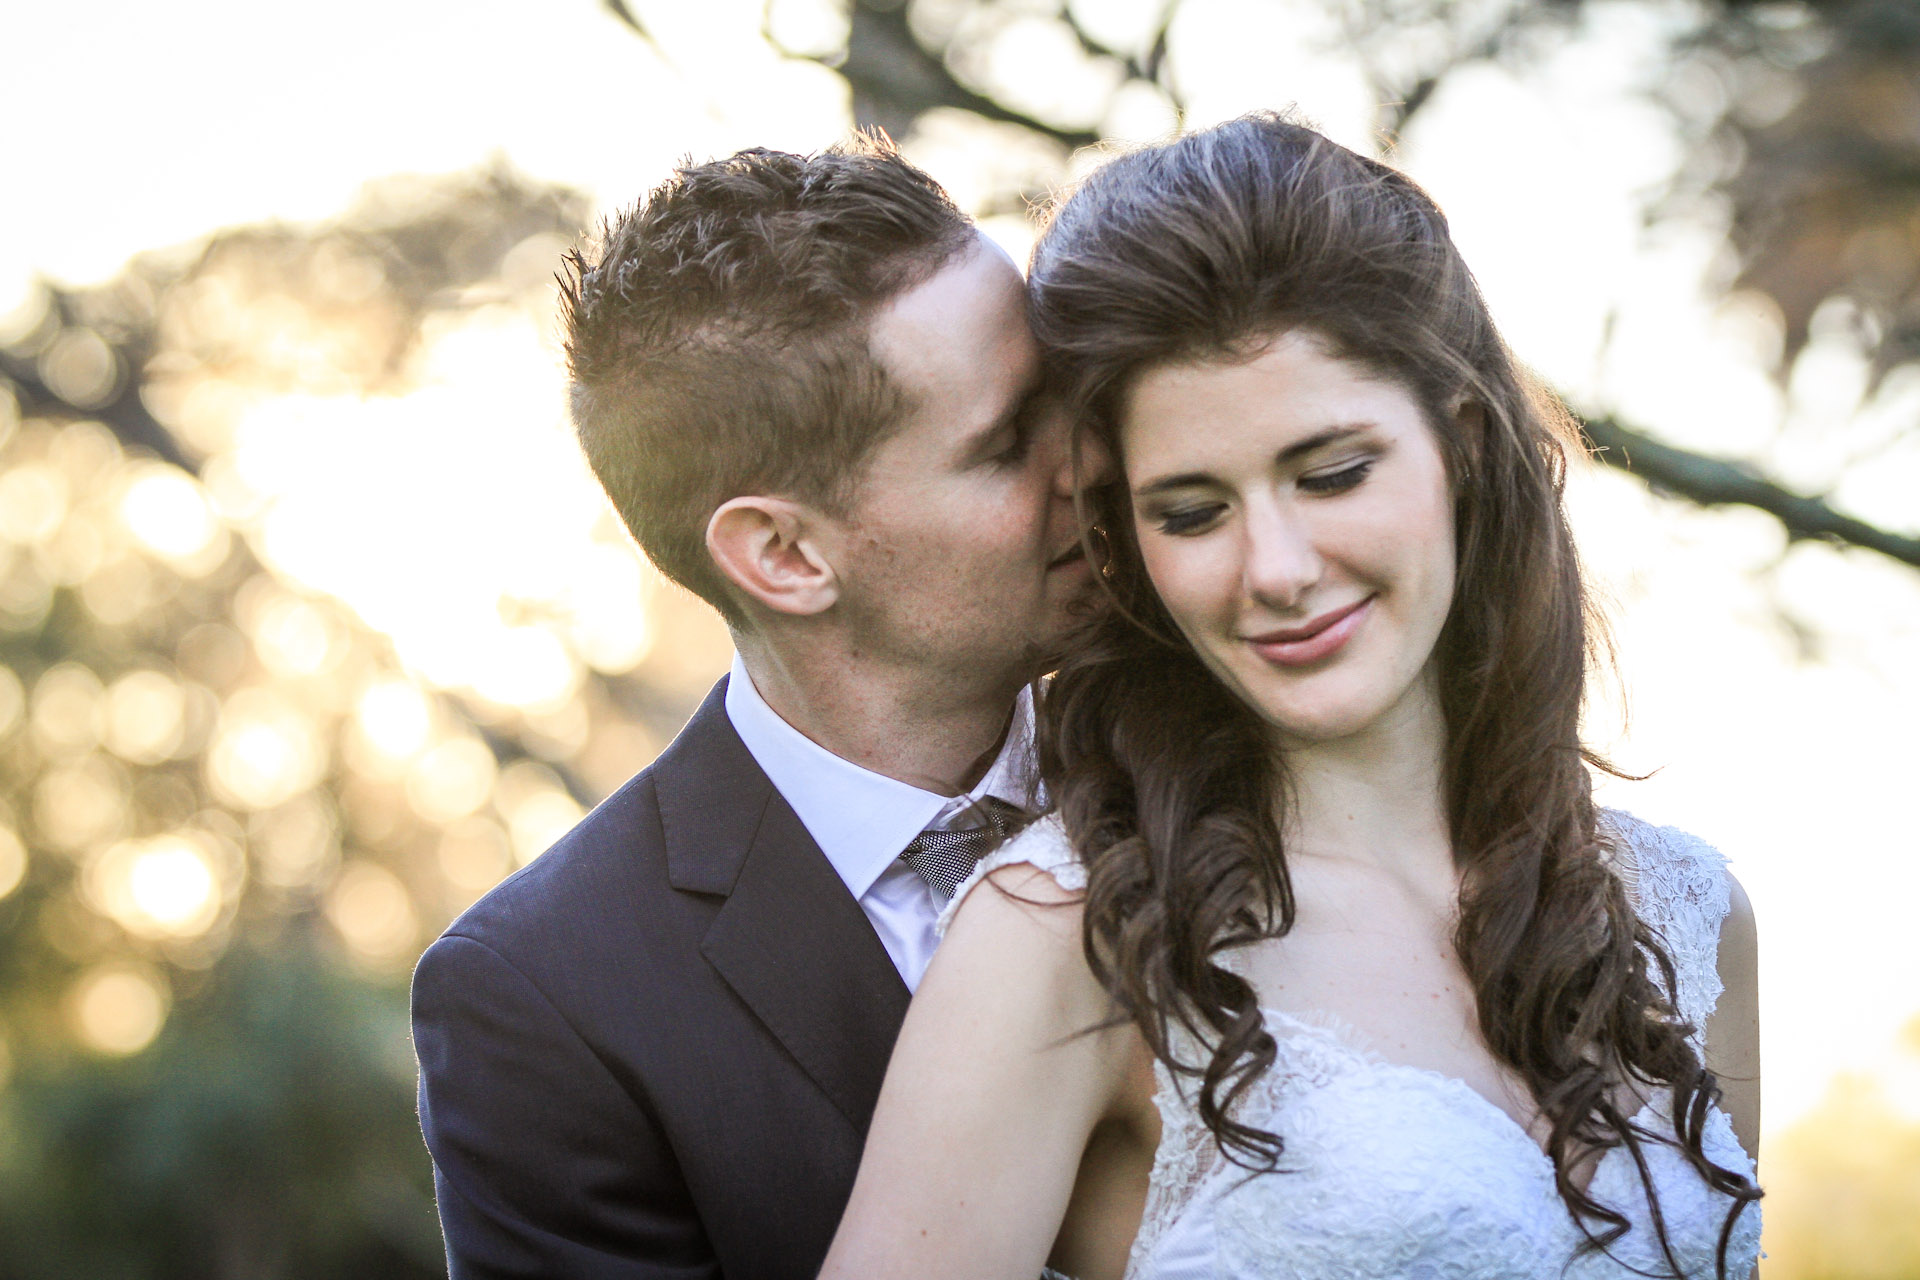 cape-town-wedding-photographers-zandri-du-preez-photography-gj-2015